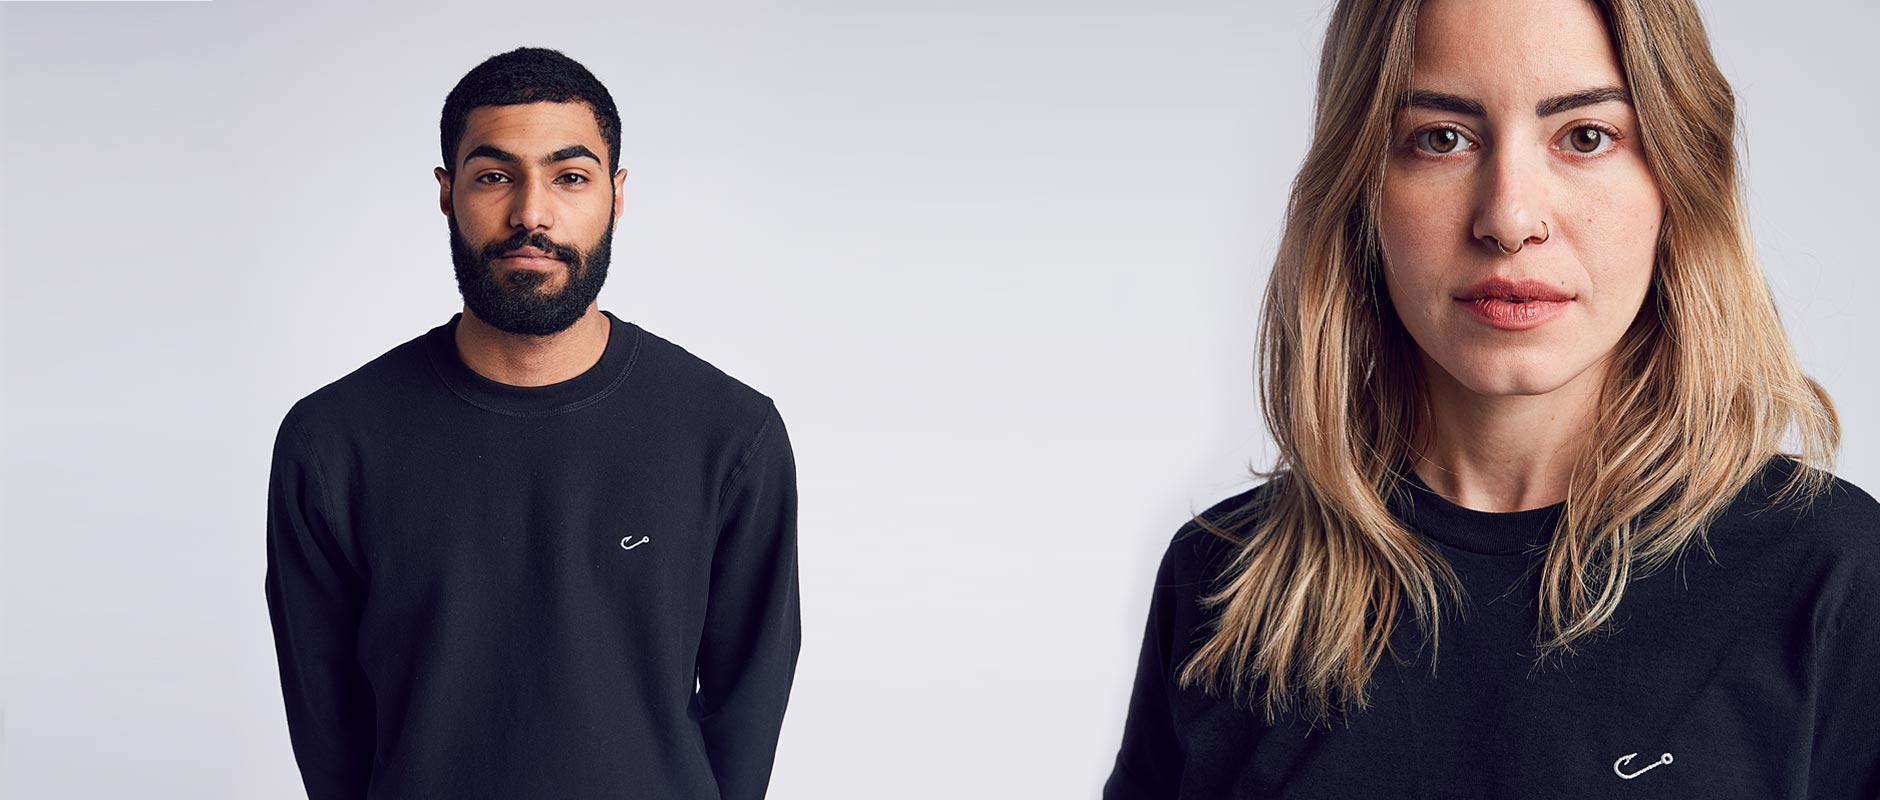 Male and Female models wearing Black Embroidered Hook Crewneck